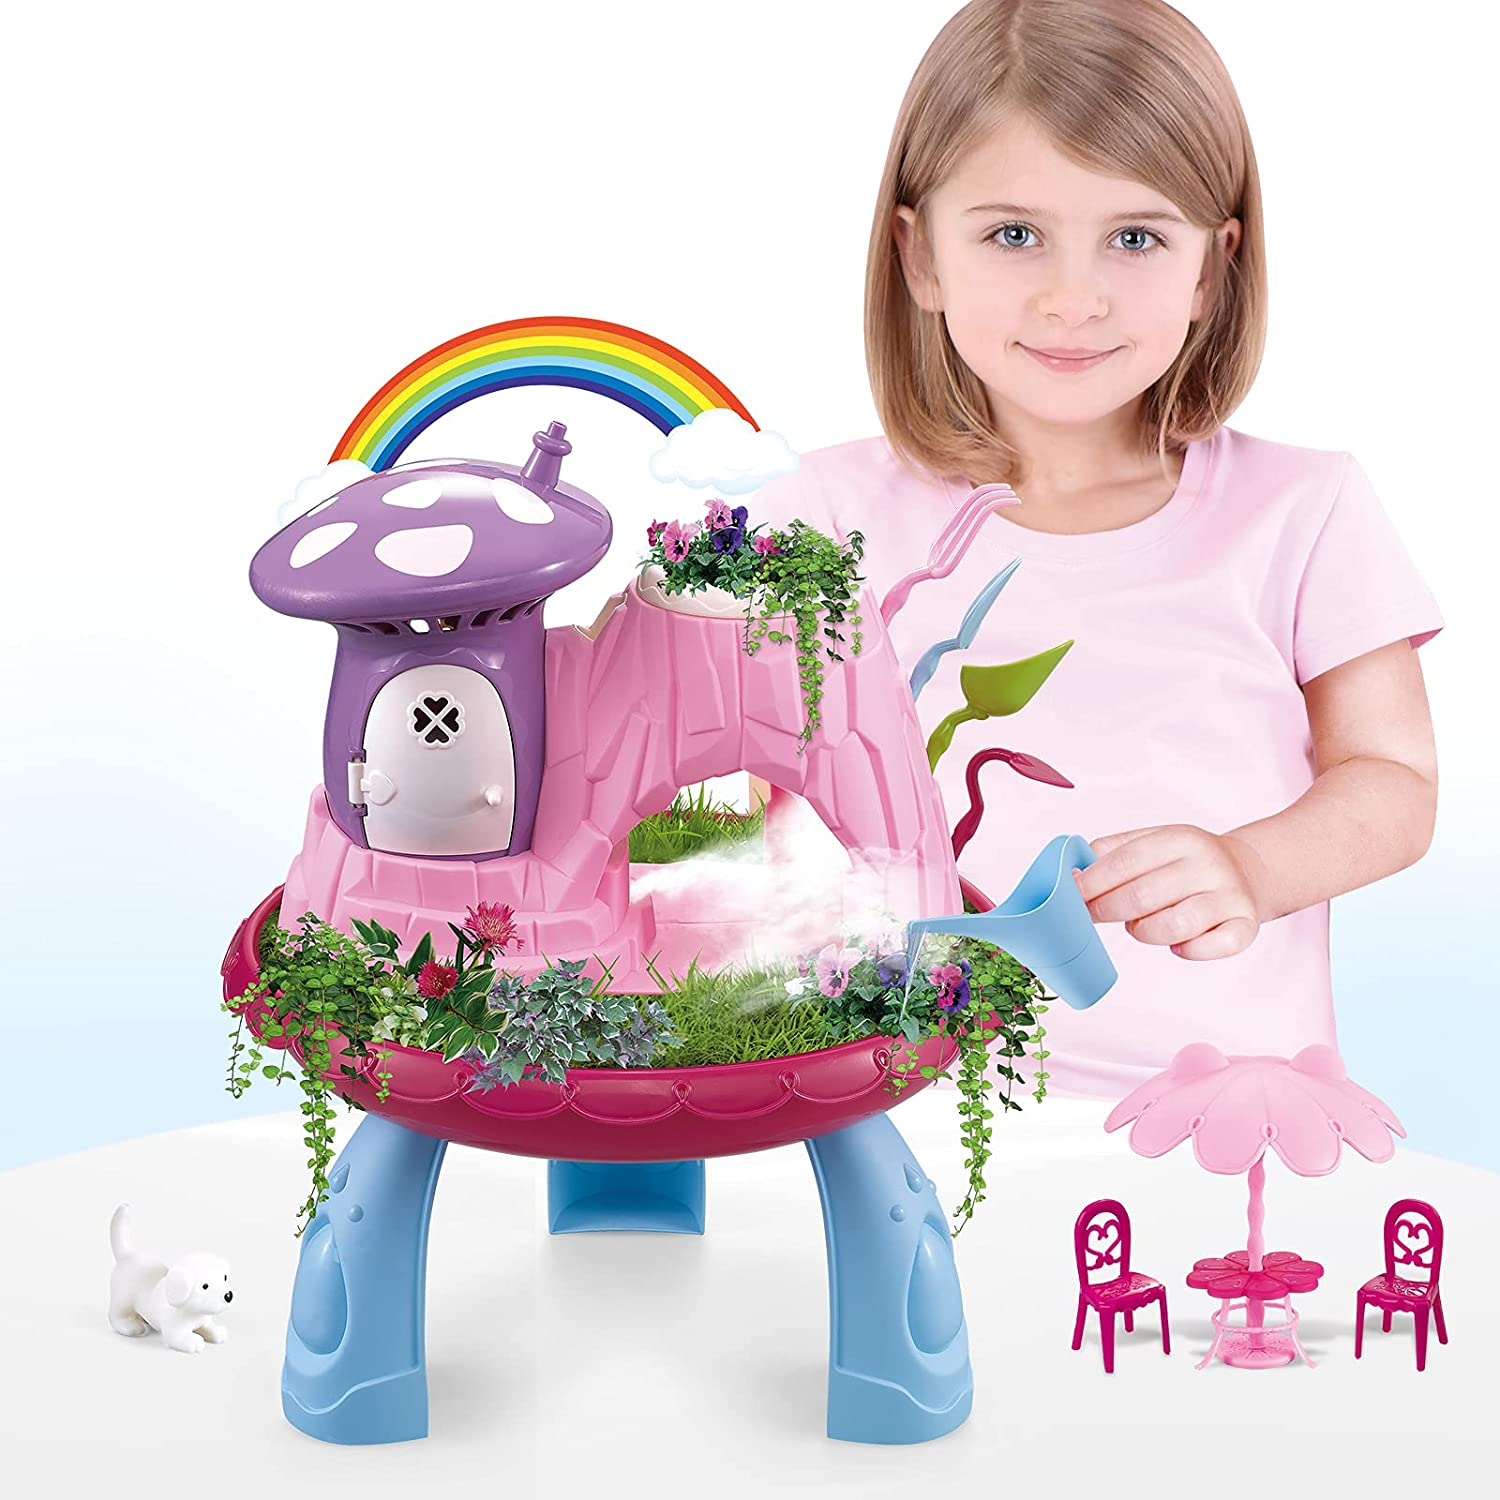 Fairy Garden Kit for Kids, Outdoor Indoor Gardening Set Play Activity Gardening Tool Set Toys Including Soil Seeds Mist Spraying Music Mini Gardening Tools Toys for Ages 3 up Girls Boys